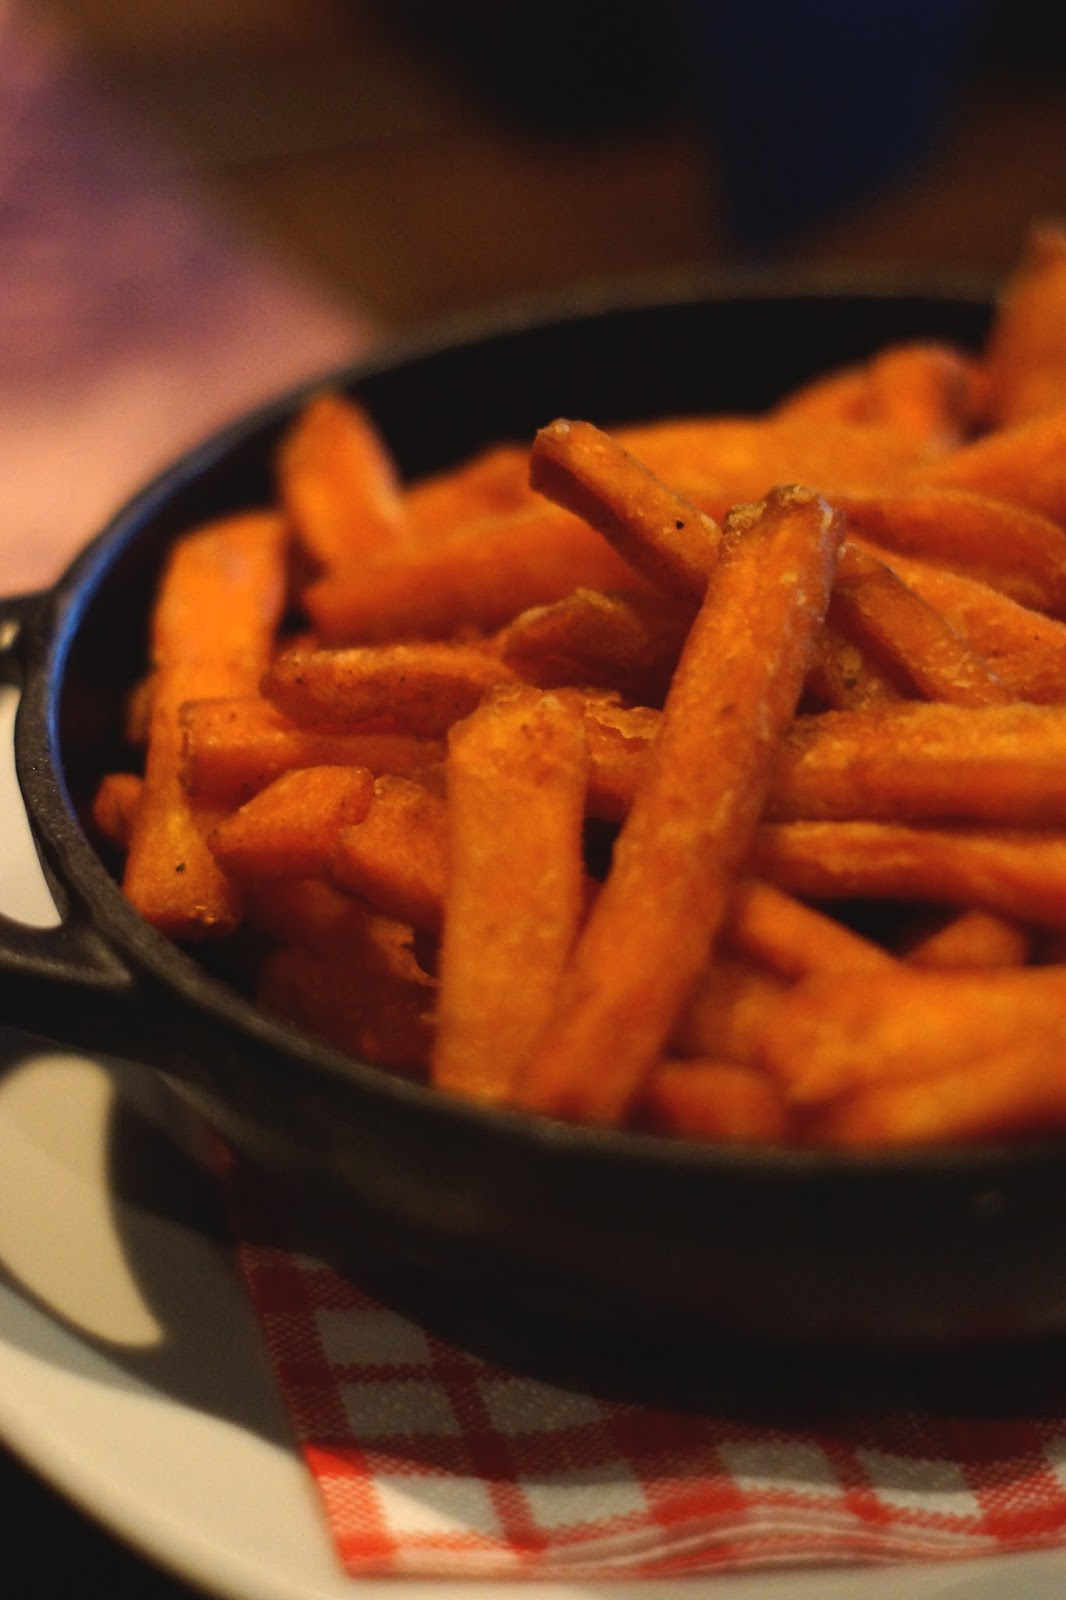 Hello Freckles River Bar Washington Sweet Potato Fries